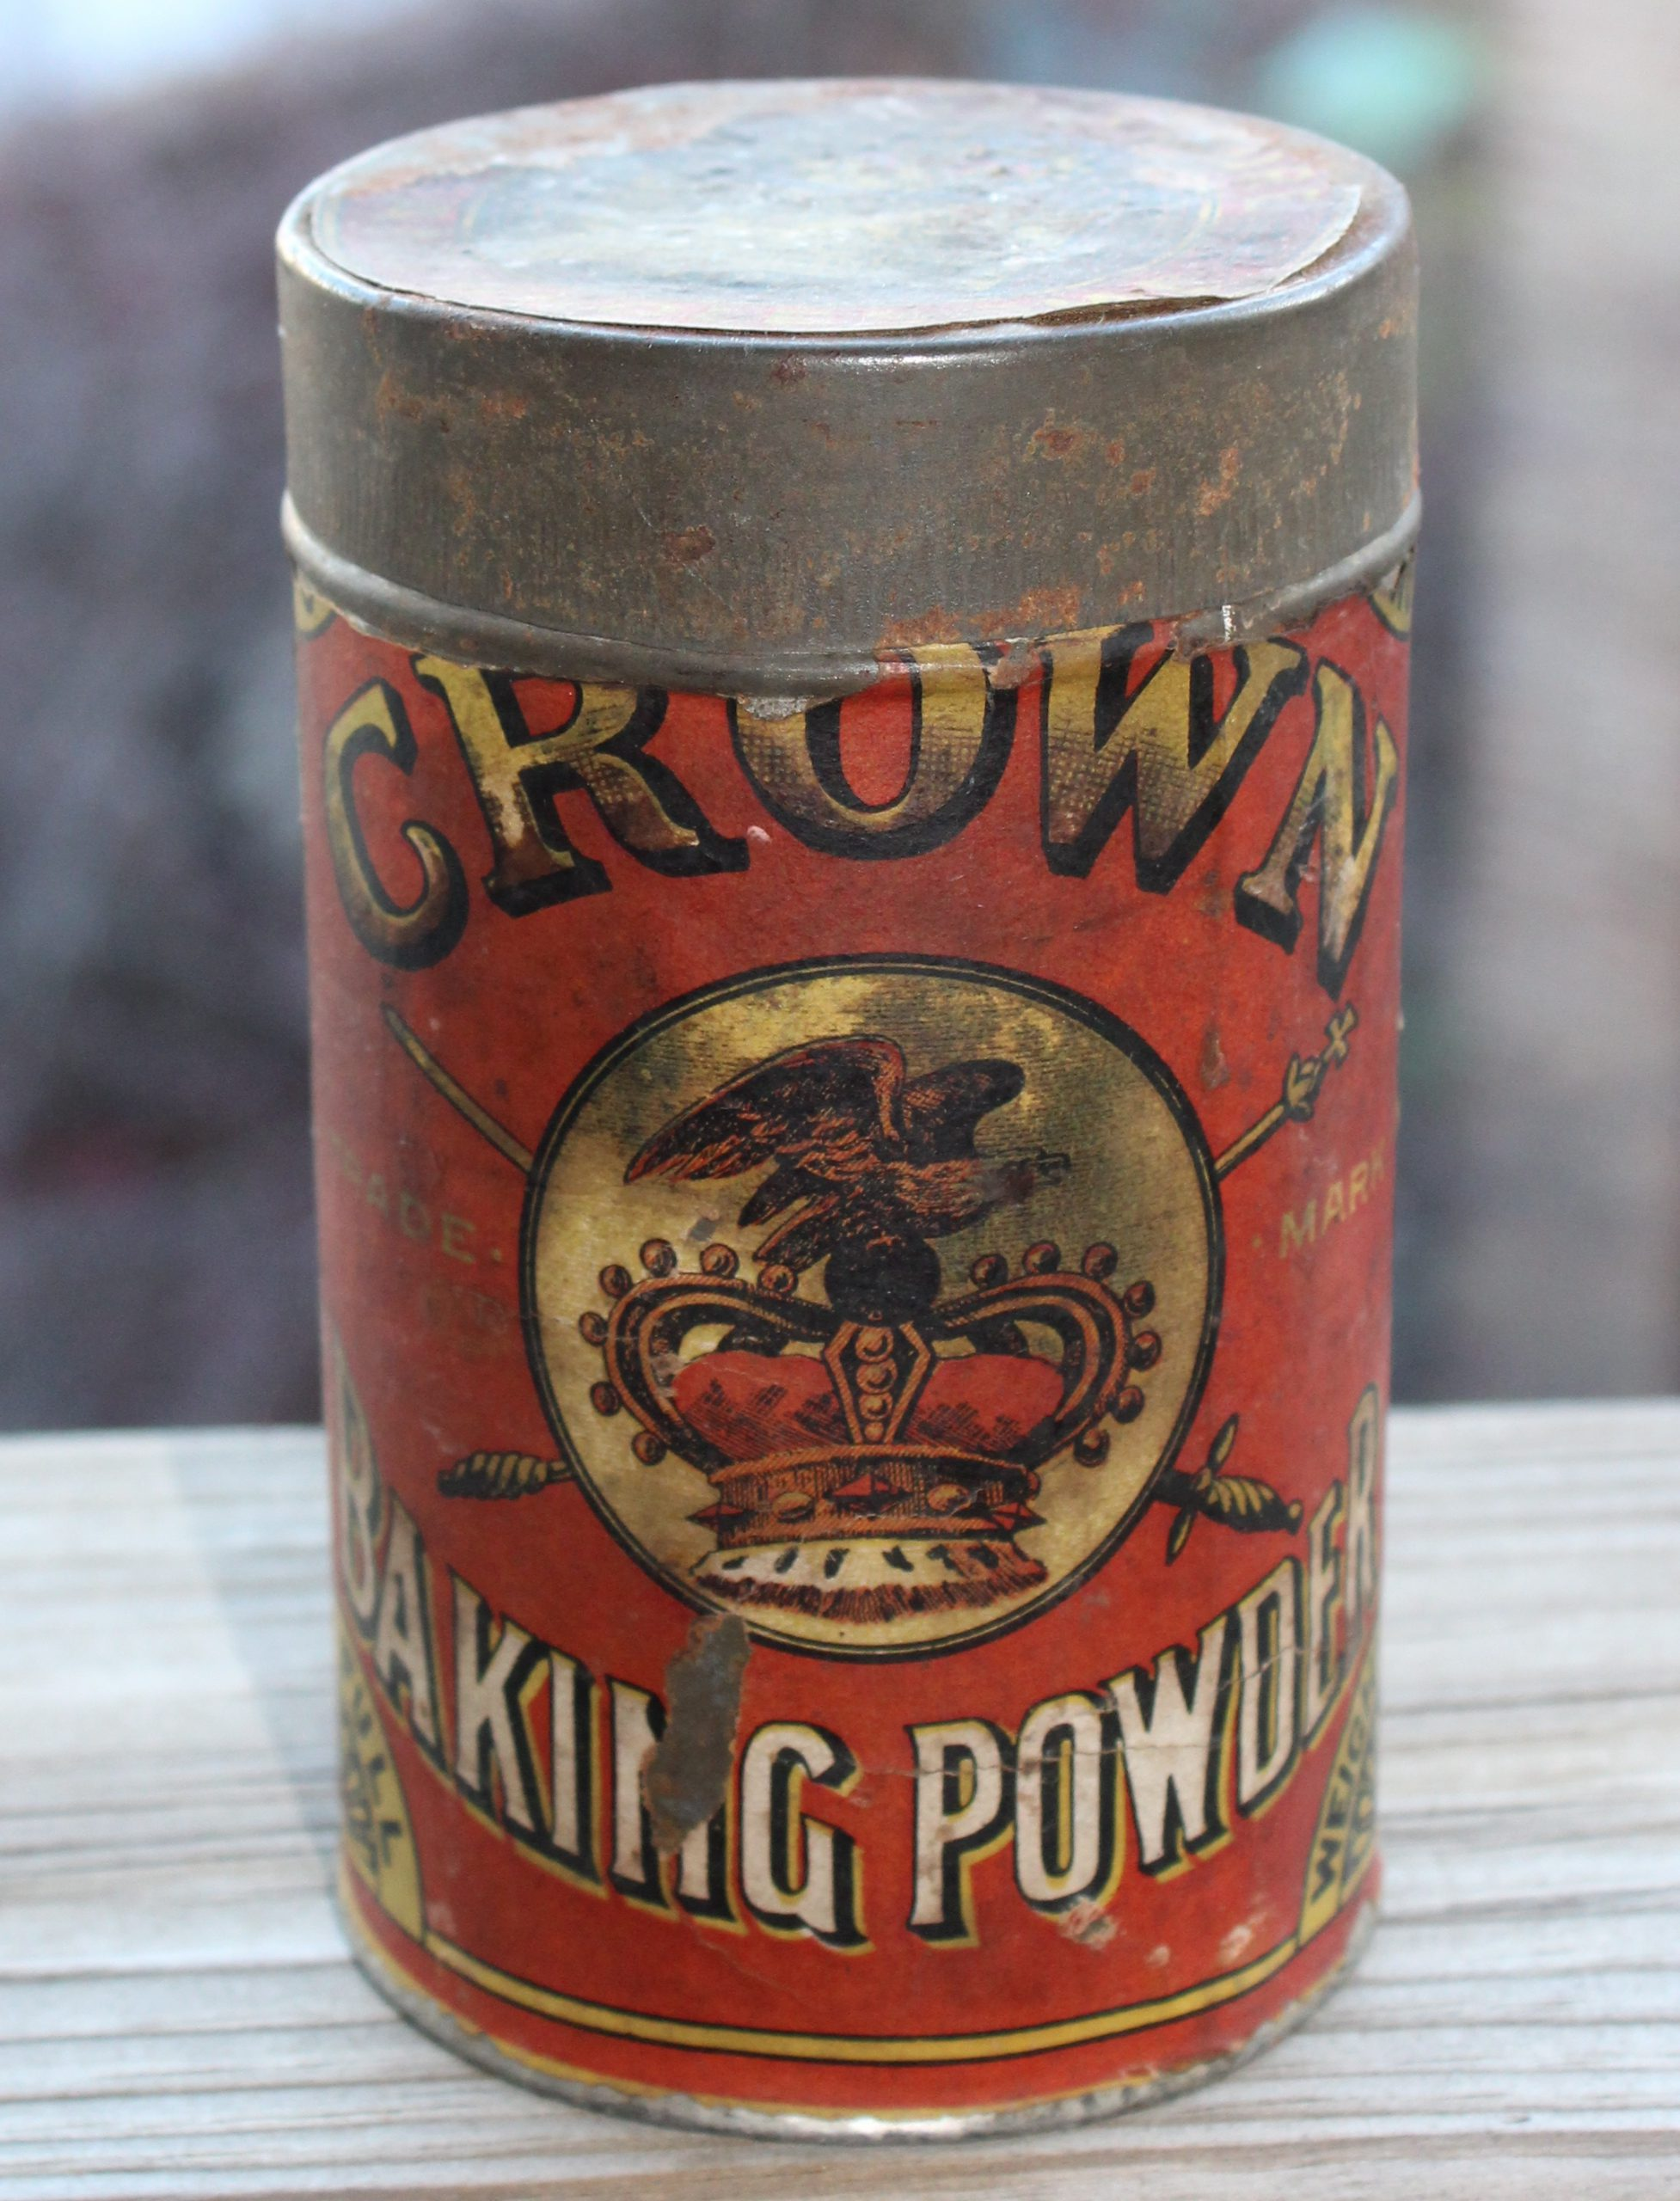 J. P. Dieter - Crown Baking Powder History